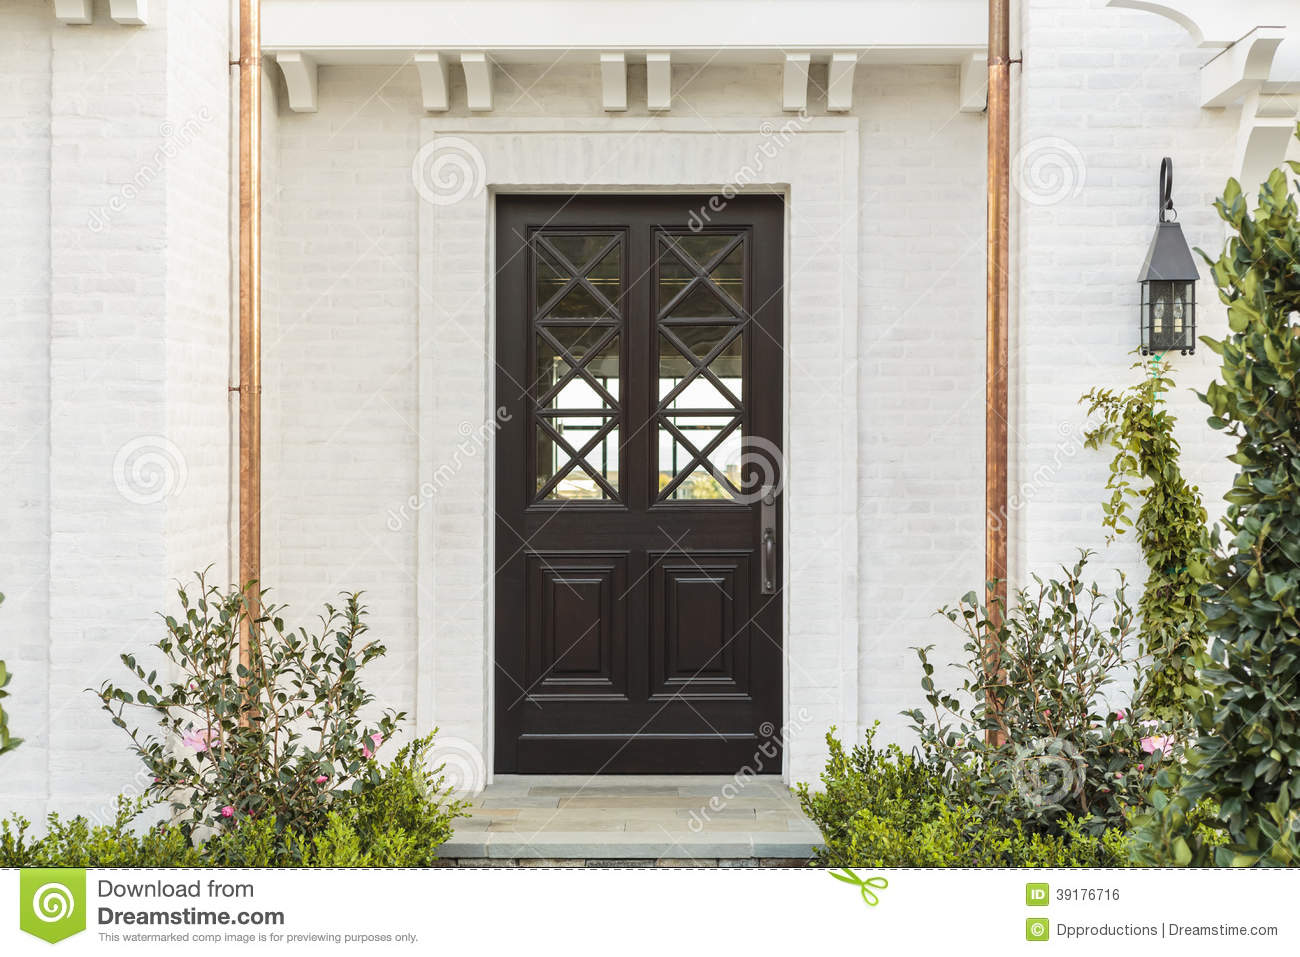 Wooden front door of white brick home with plants stock for White wooden front doors